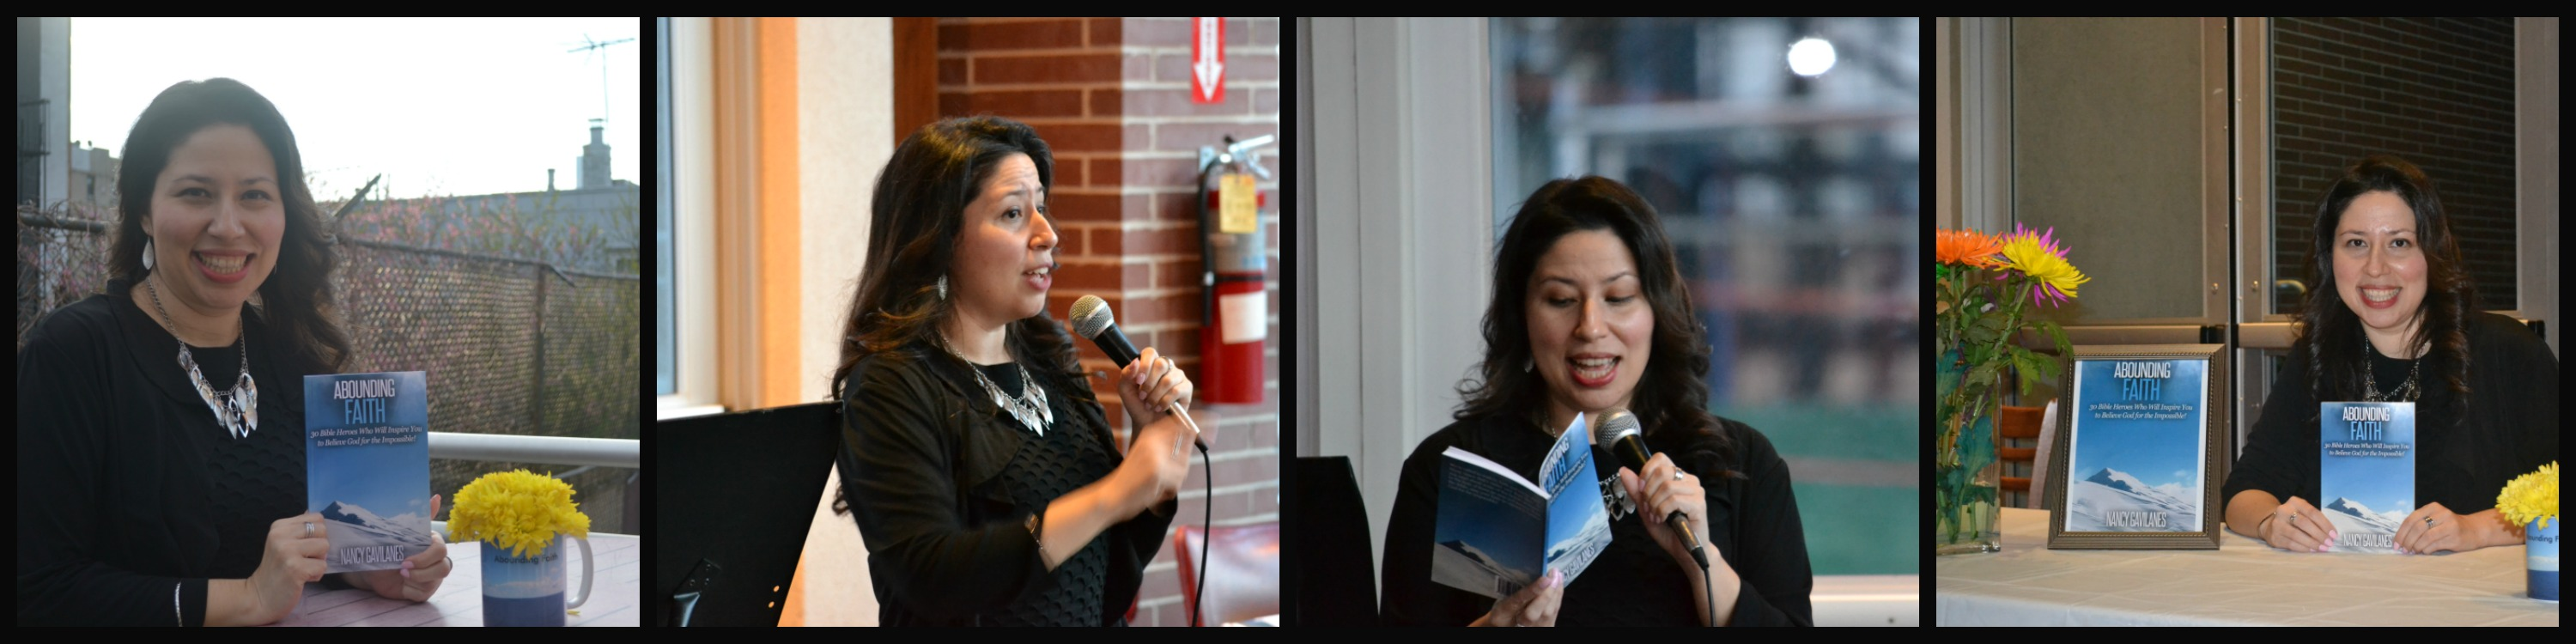 Book 2 Launch author collage 4-17-16